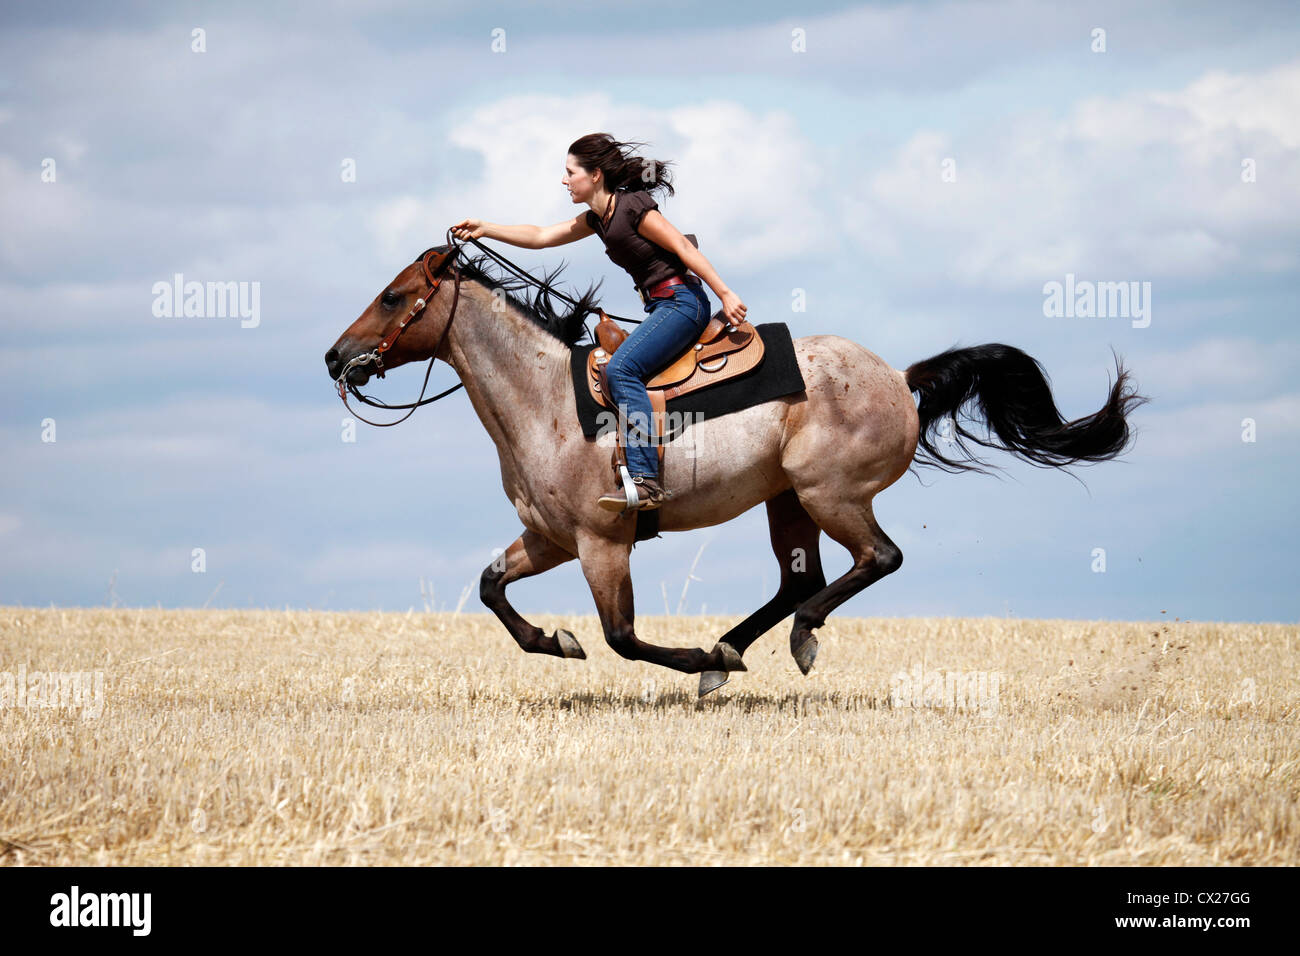 Western Riding Horsewoman Stock Photo Alamy